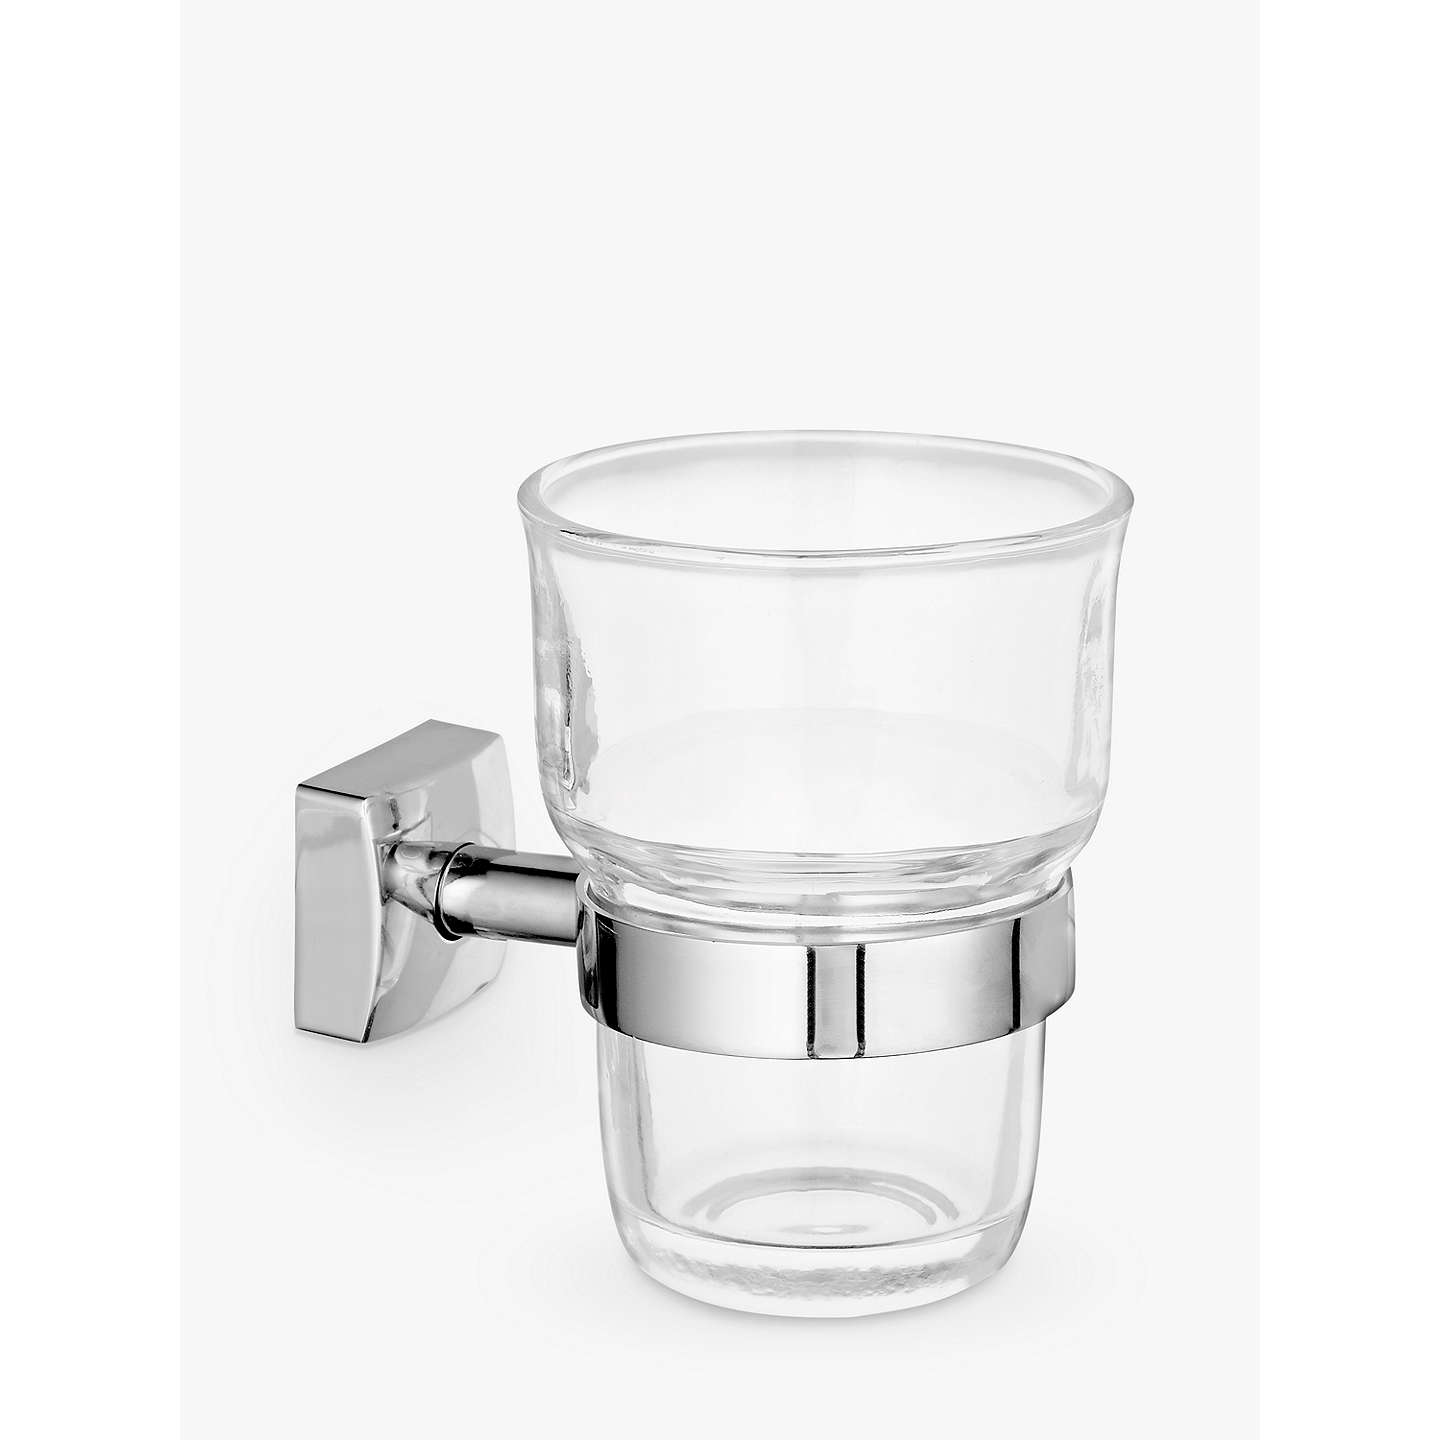 Delicieux BuyJohn Lewis Pure Bathroom Tumbler And Holder, Silver Online At  Johnlewis.com